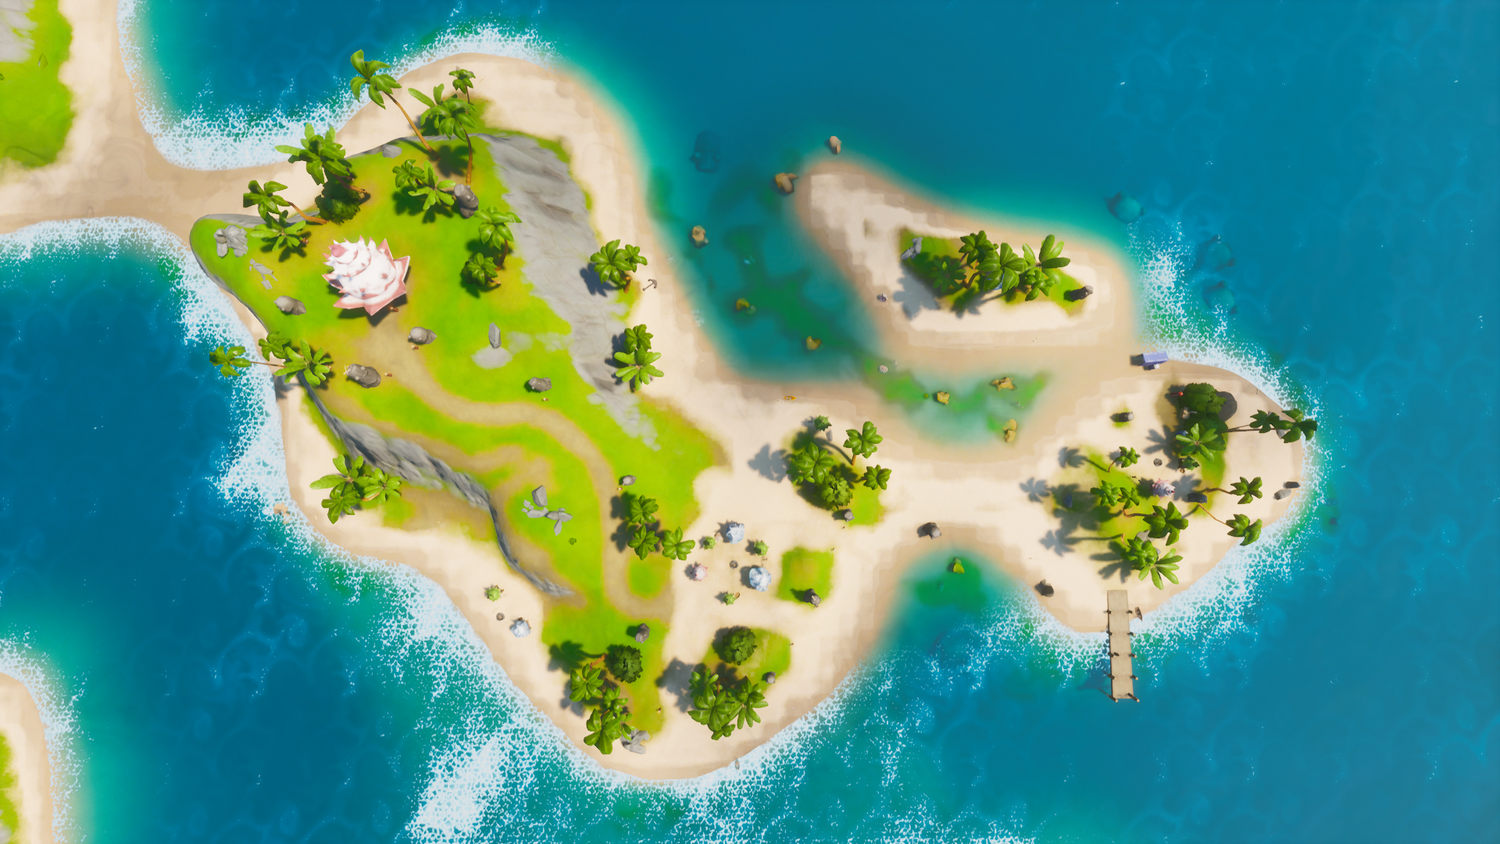 Coral Cove Top View.png